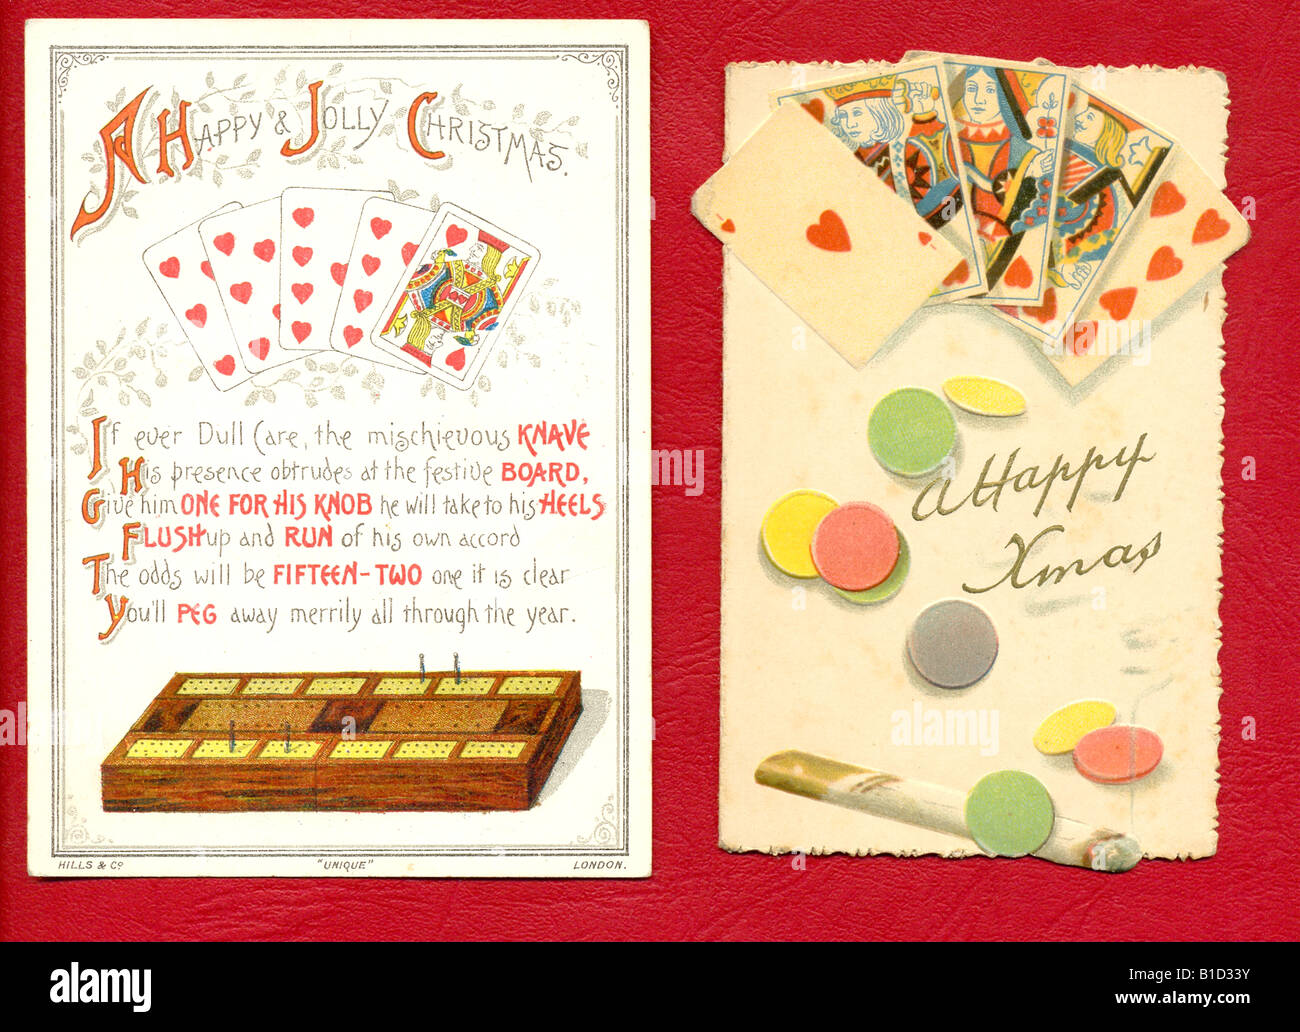 Two Victorian greetings cards featuring playing cards and games circa 1890 - Stock Image